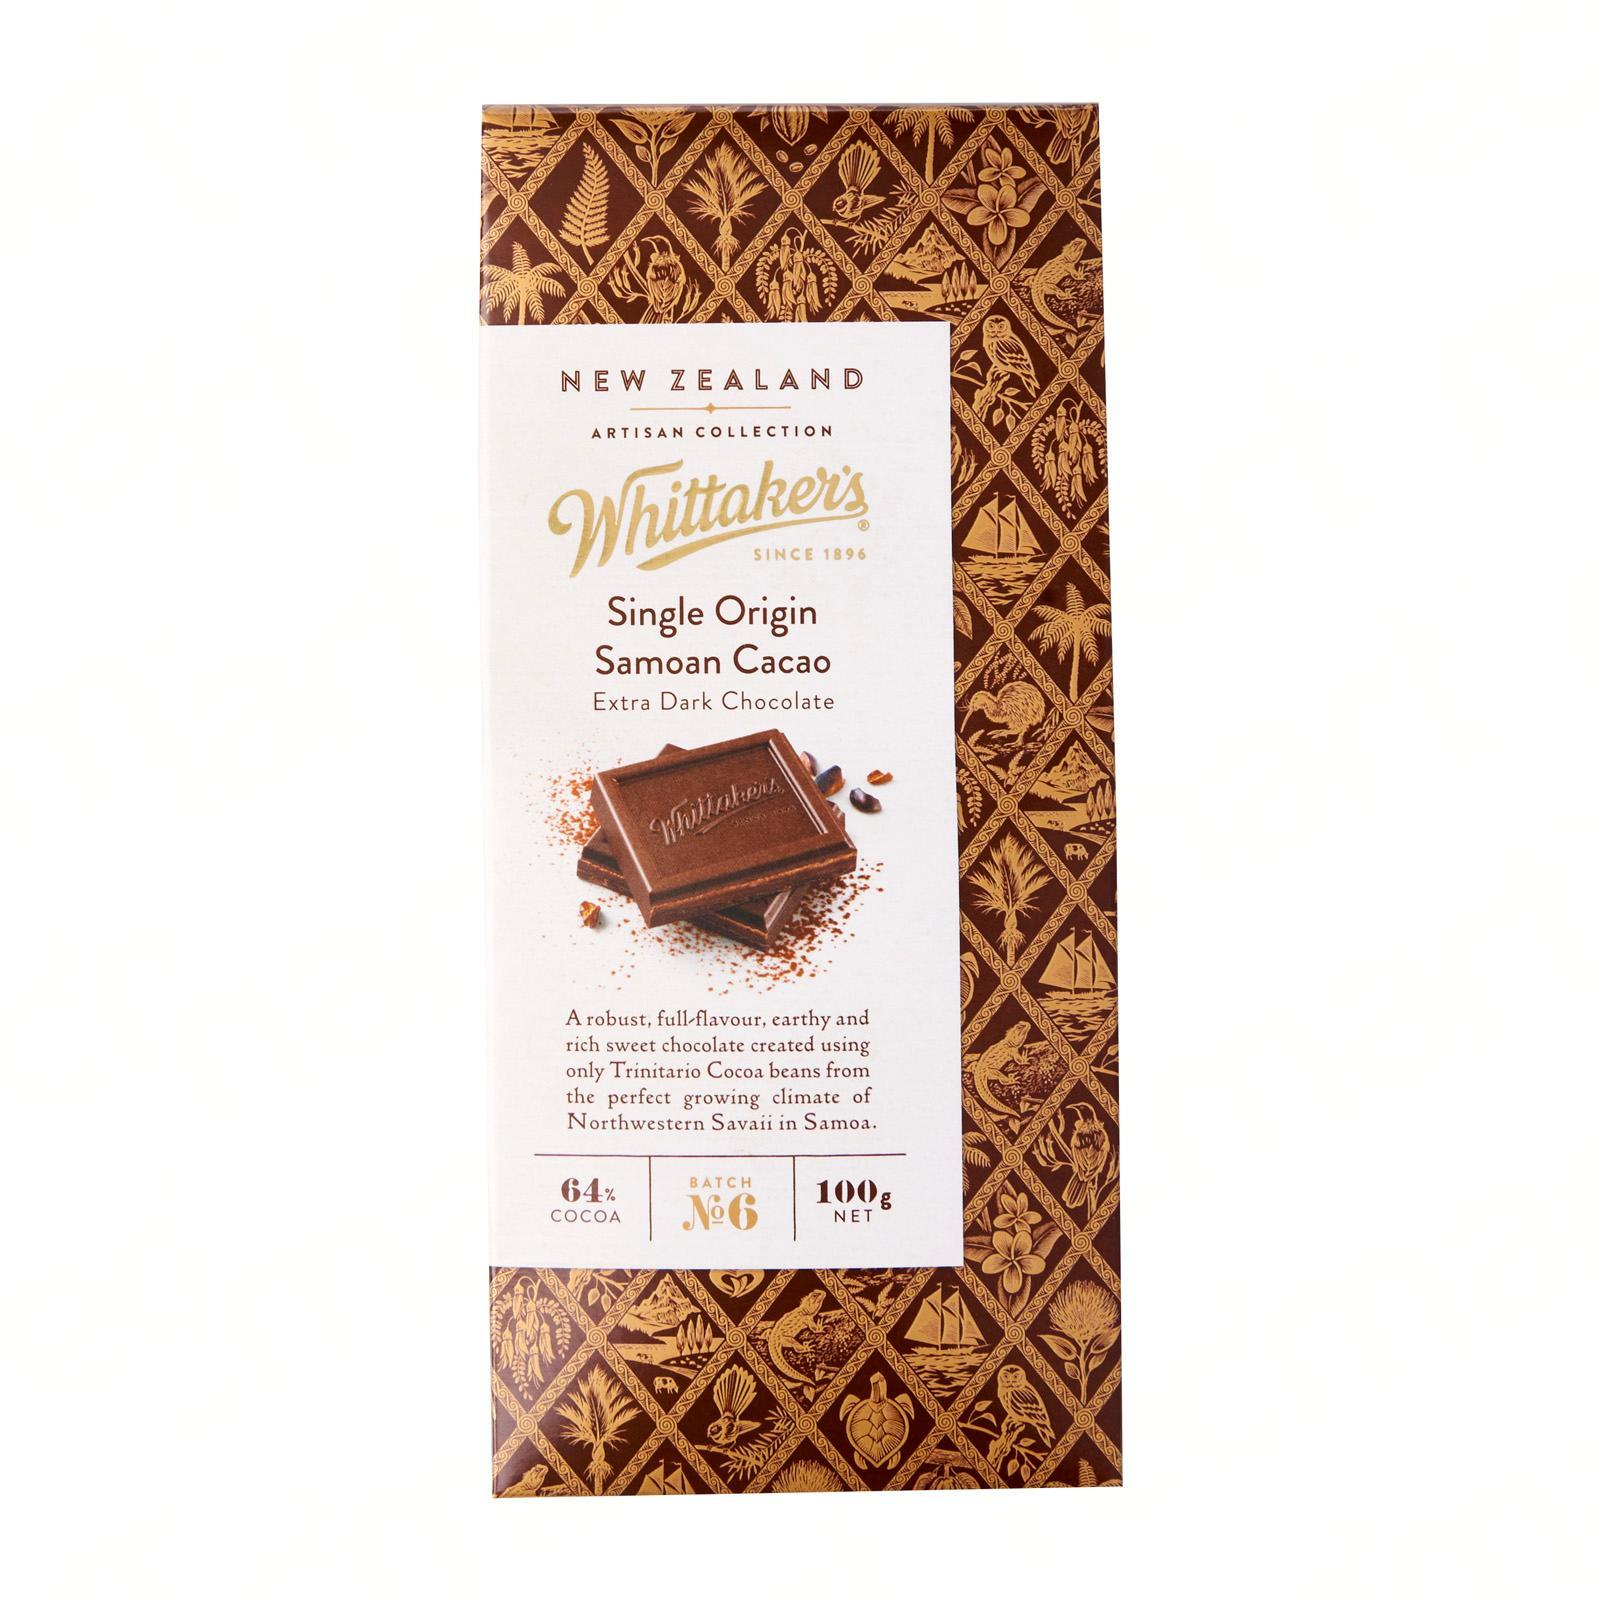 Whittaker's Single Origin Samoan Cacao Chocolate Artisan Collection